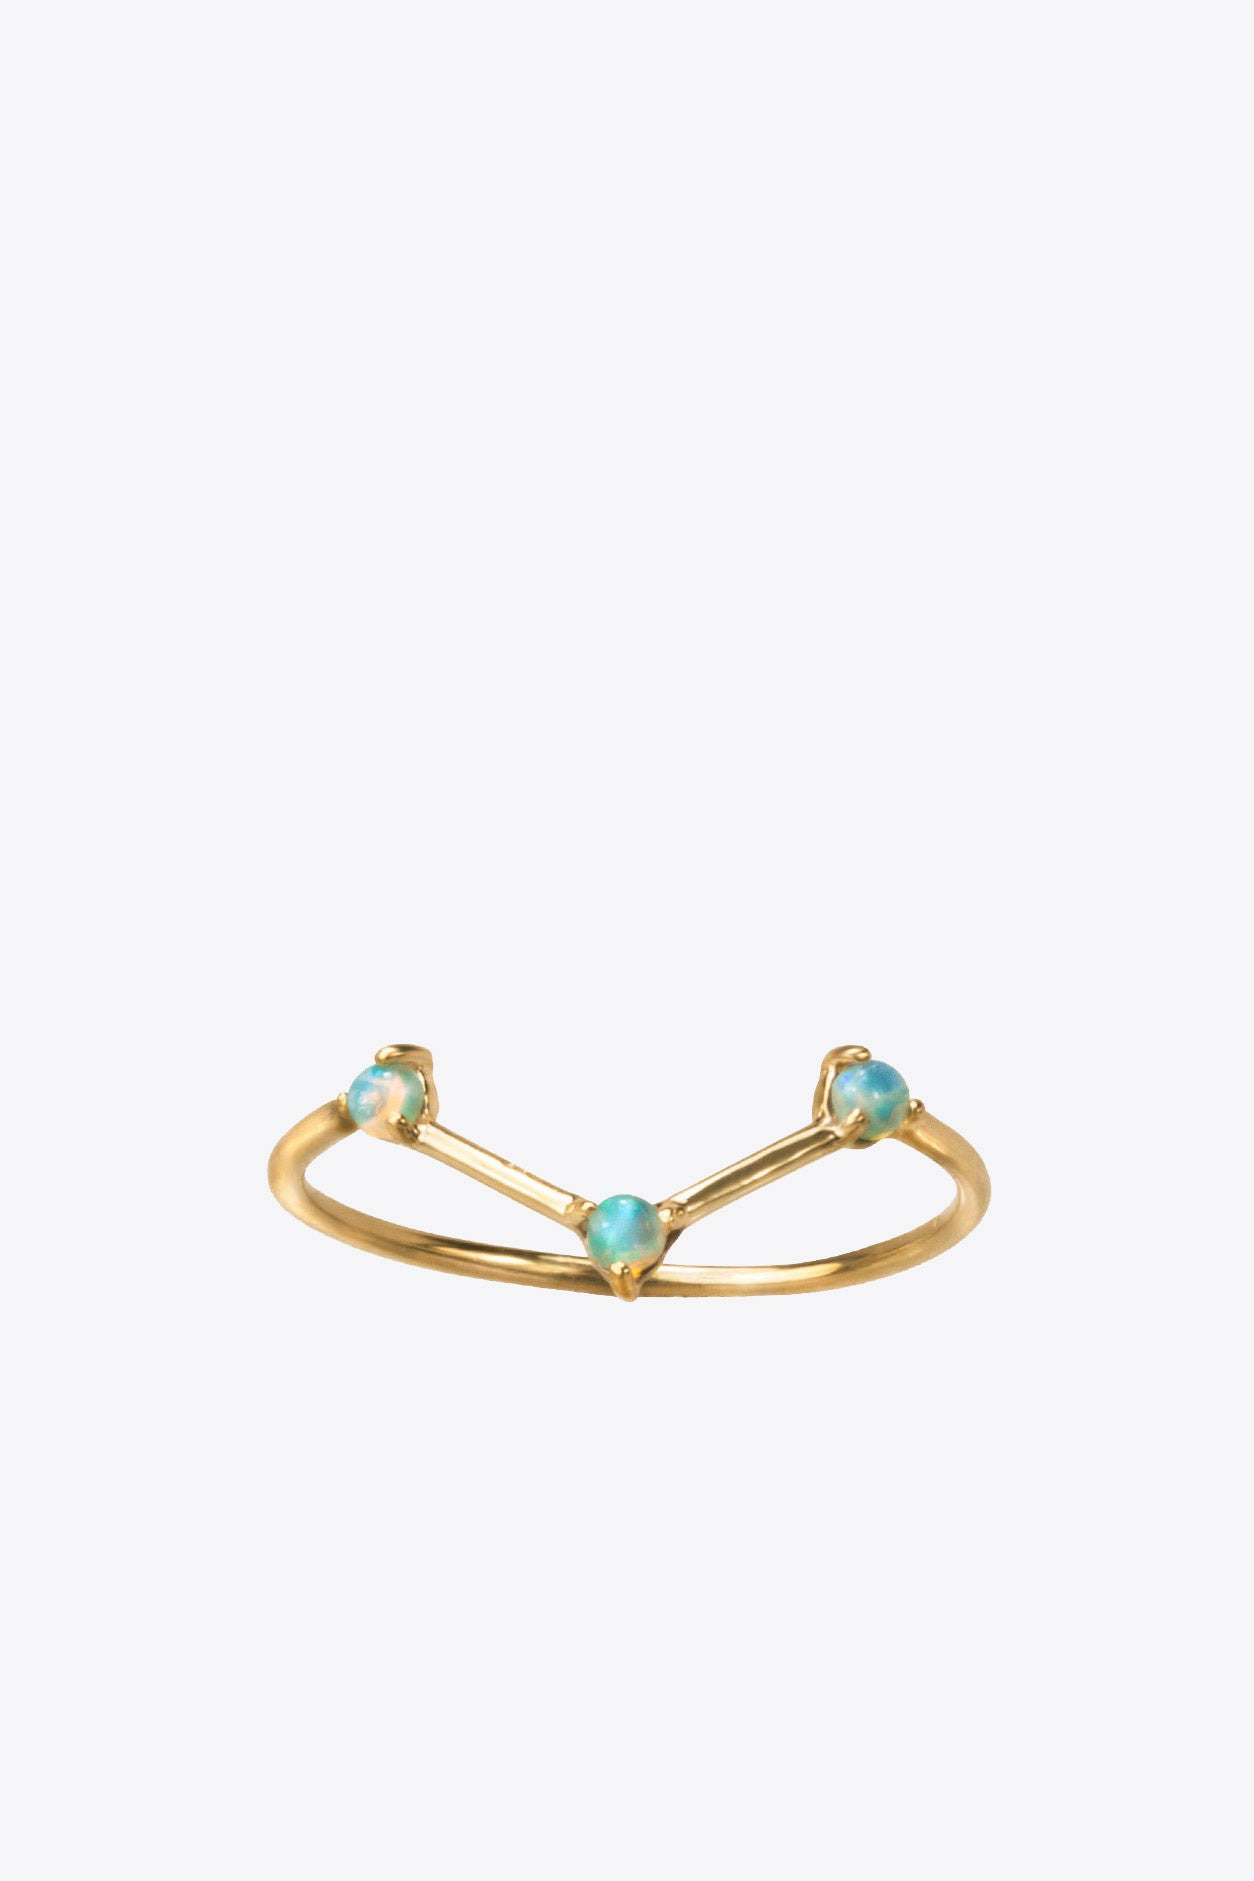 Three step opal and 14k gold ring